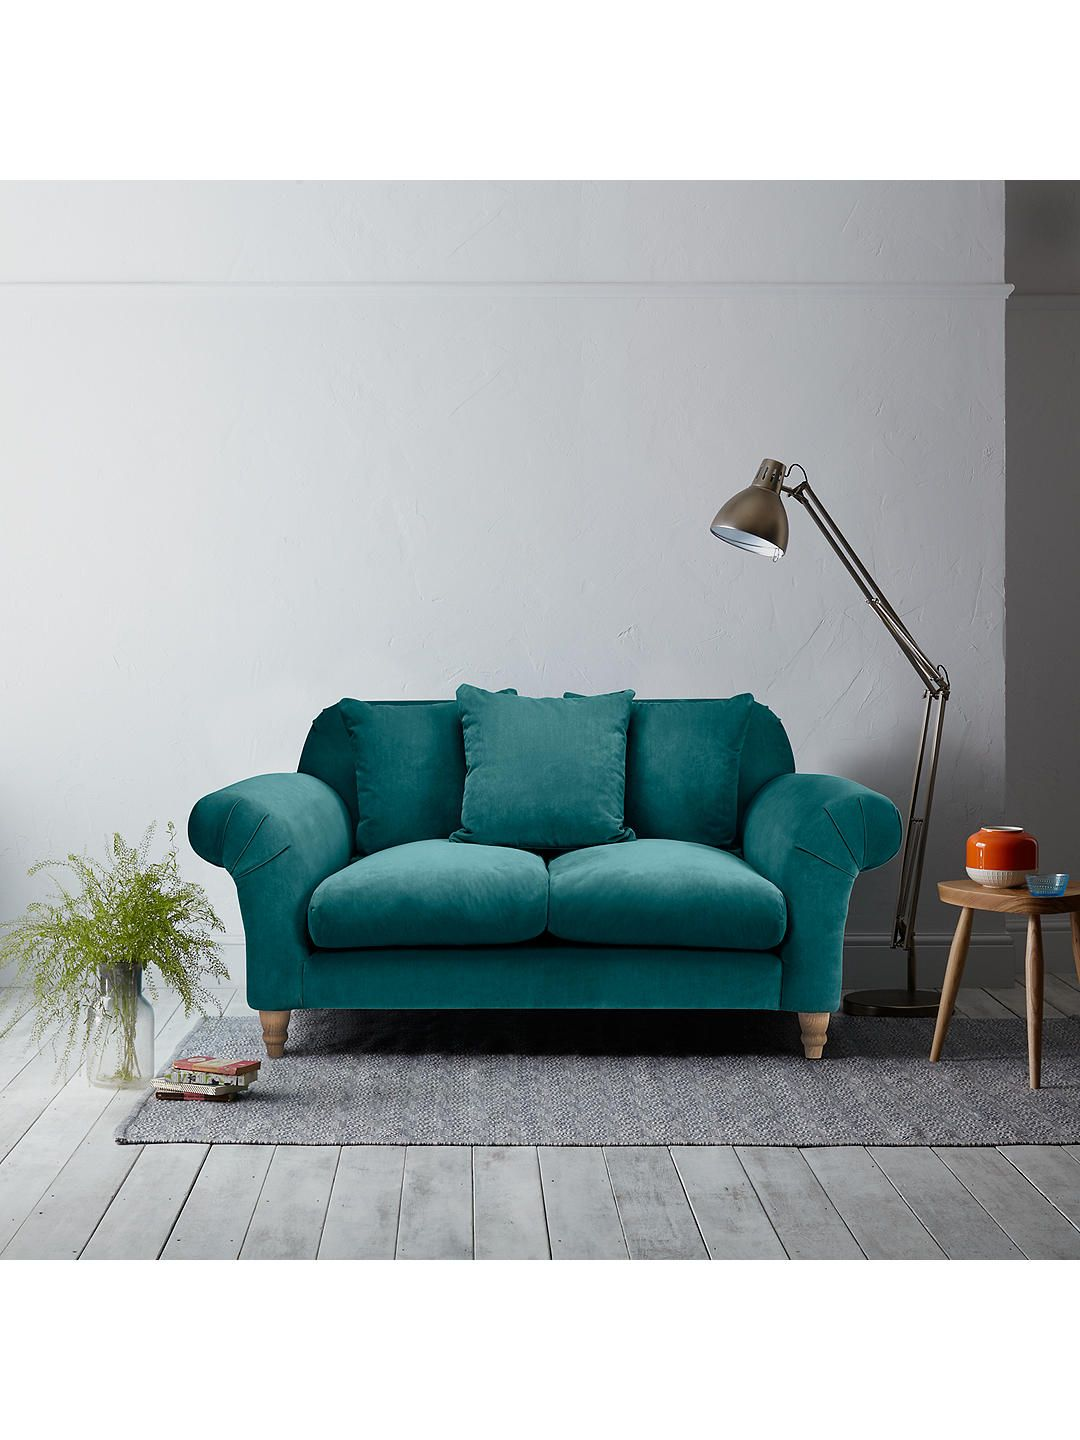 Doodler Small 2 Seater Sofa By Loaf At John Lewis Clever Velvet Bumblebee Living Room Sofa 2 Seater Sofa Modern Sofa Living Room